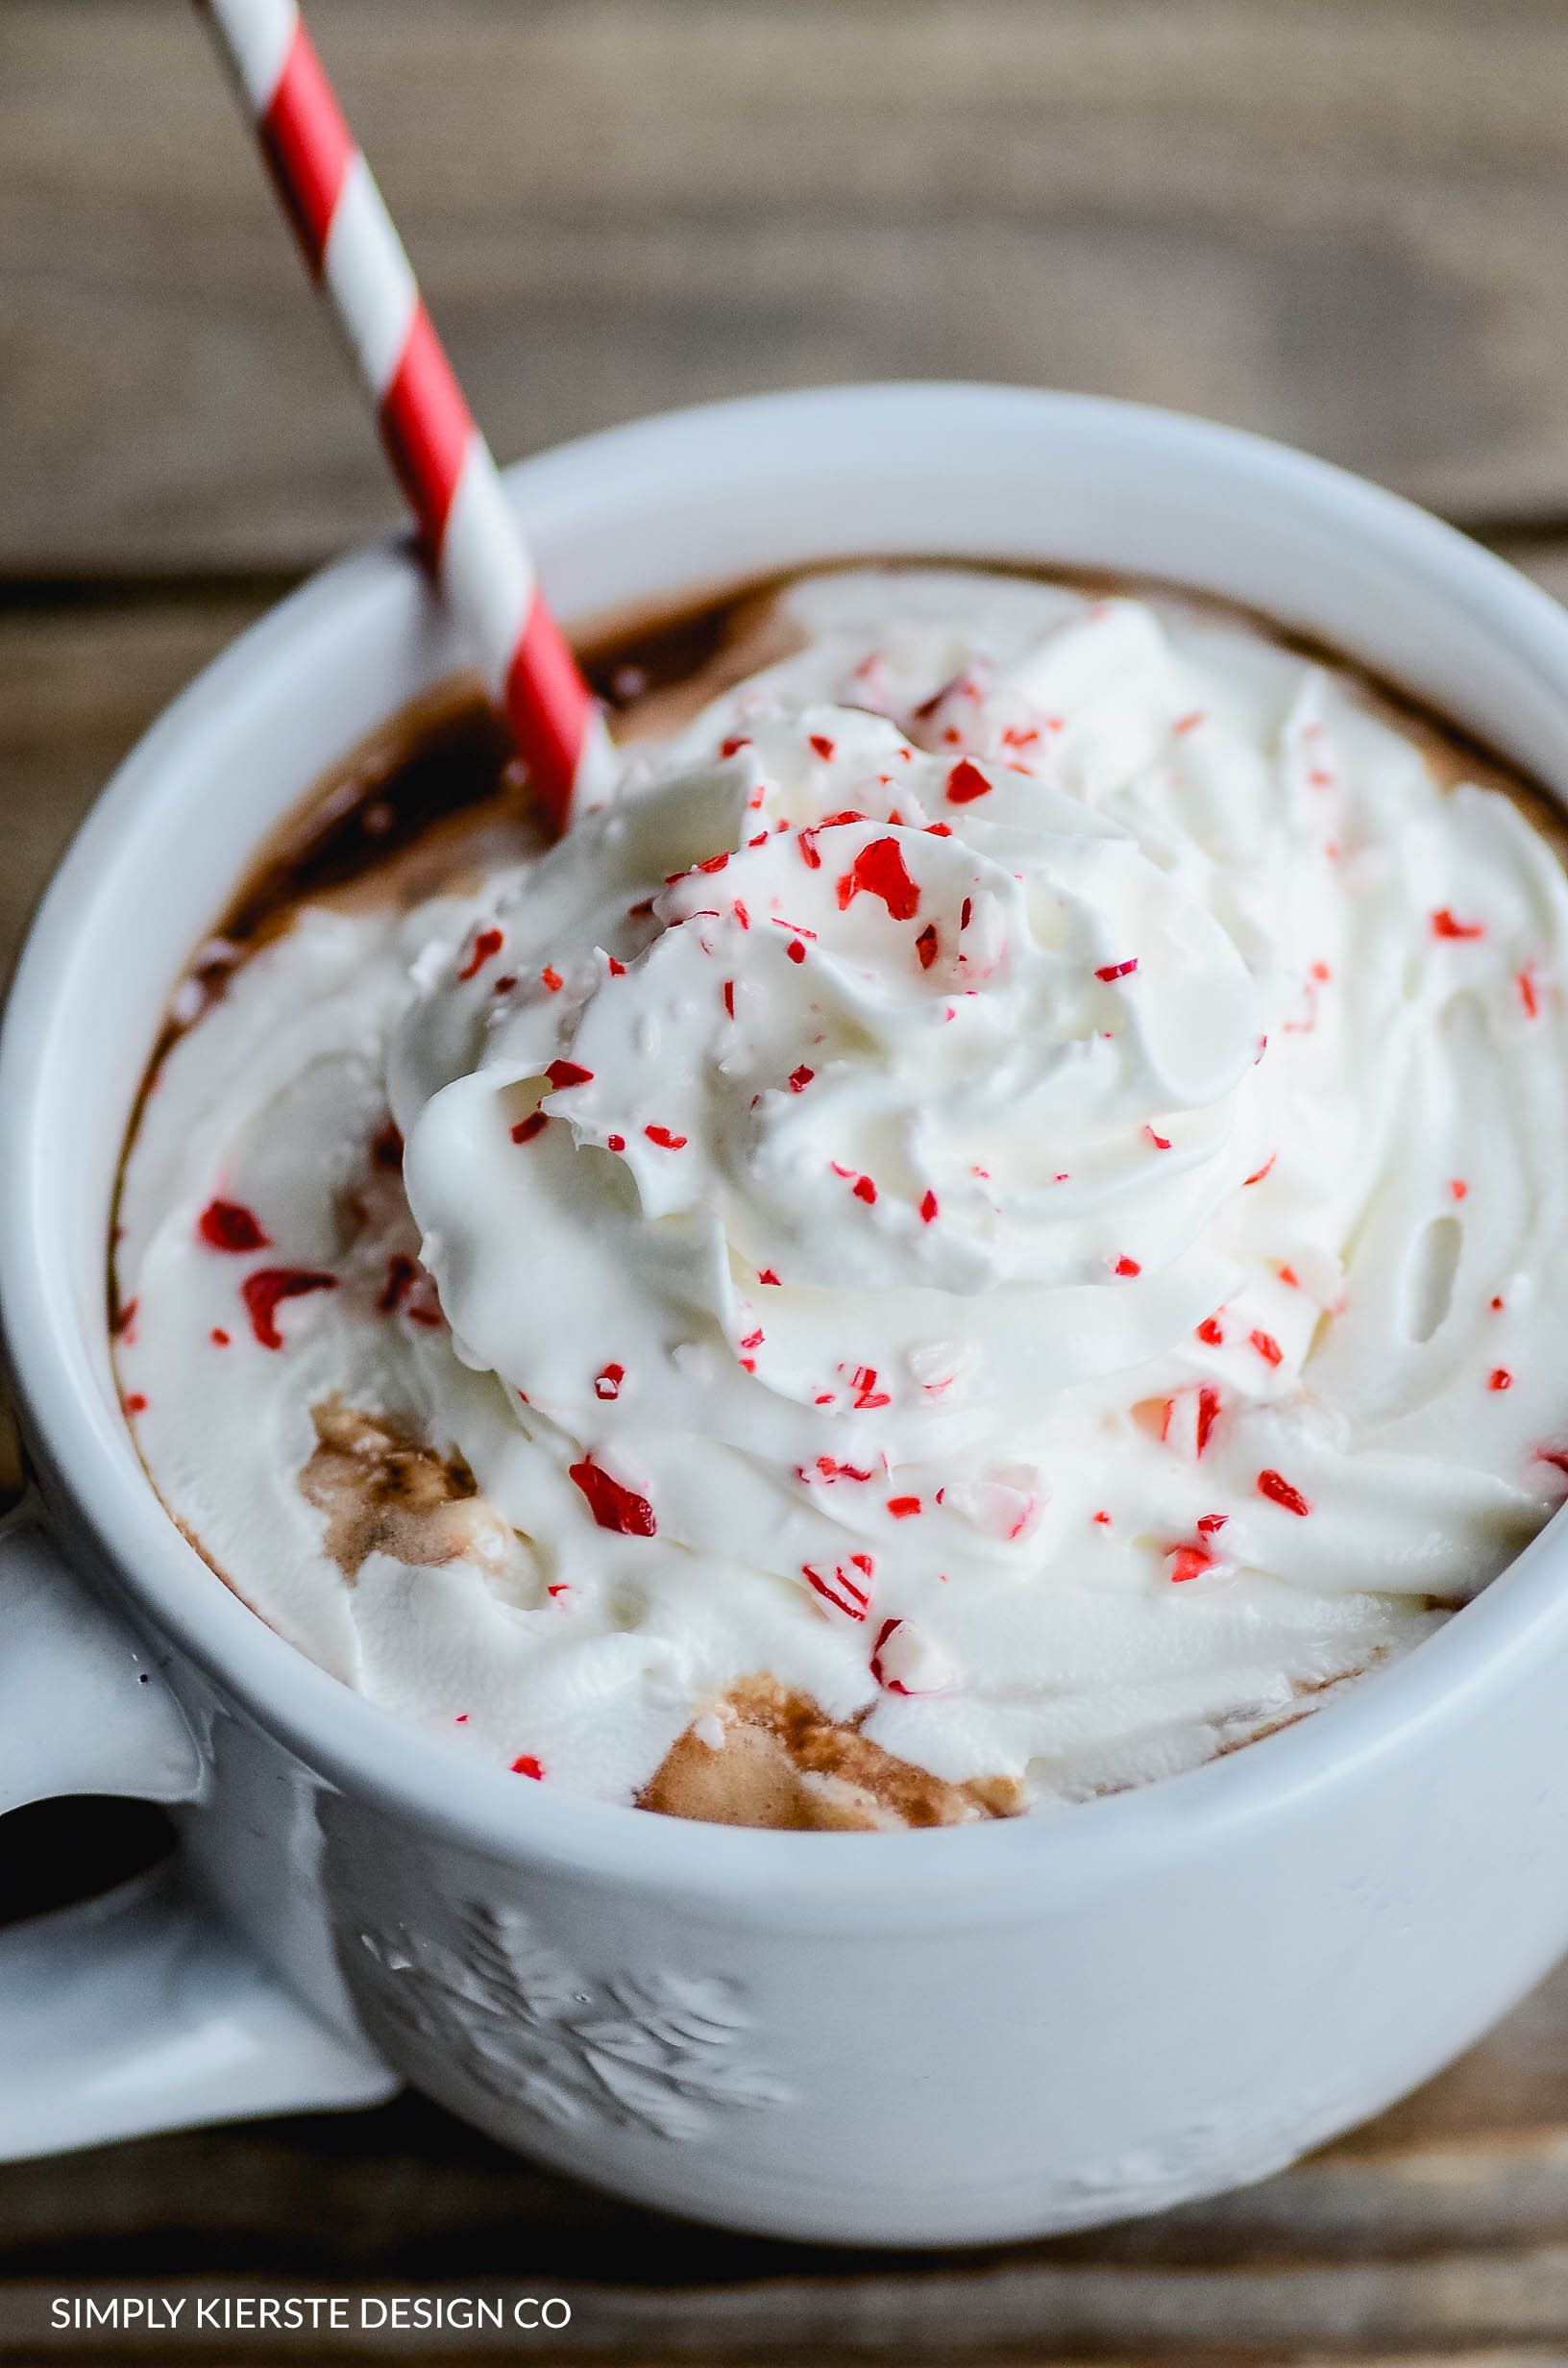 The BEST Homemade Hot Chocolate with Peppermint Cream | simplykierste.com #peppermint #hotchocolate #whippedcream